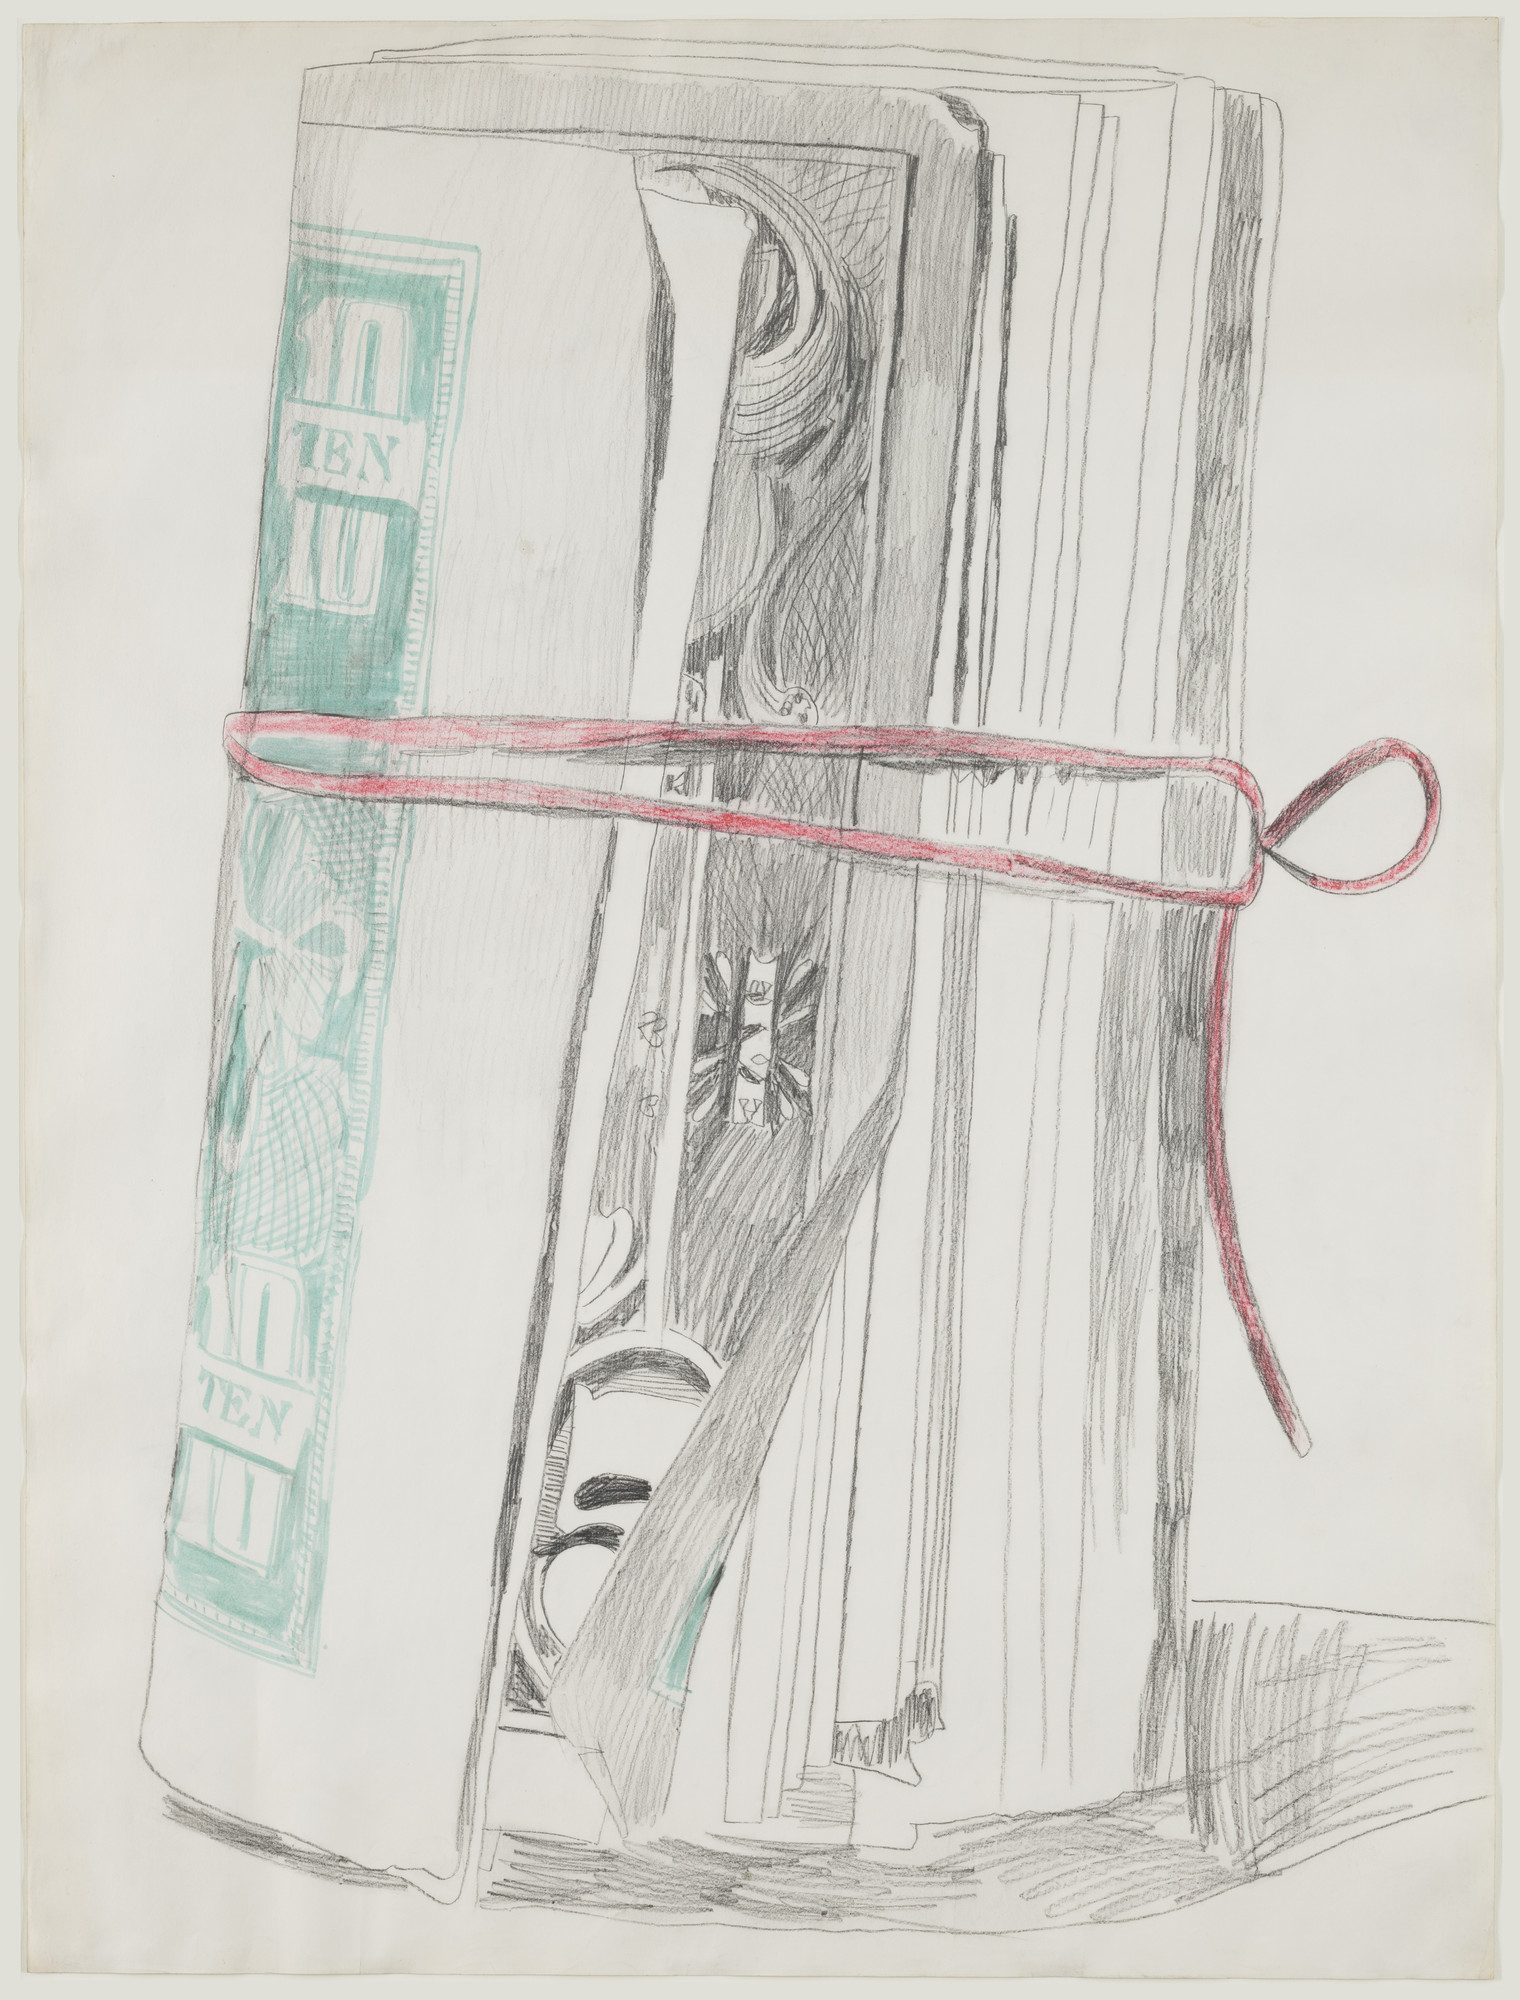 Andy Warhol. Roll of Bills. (1962)